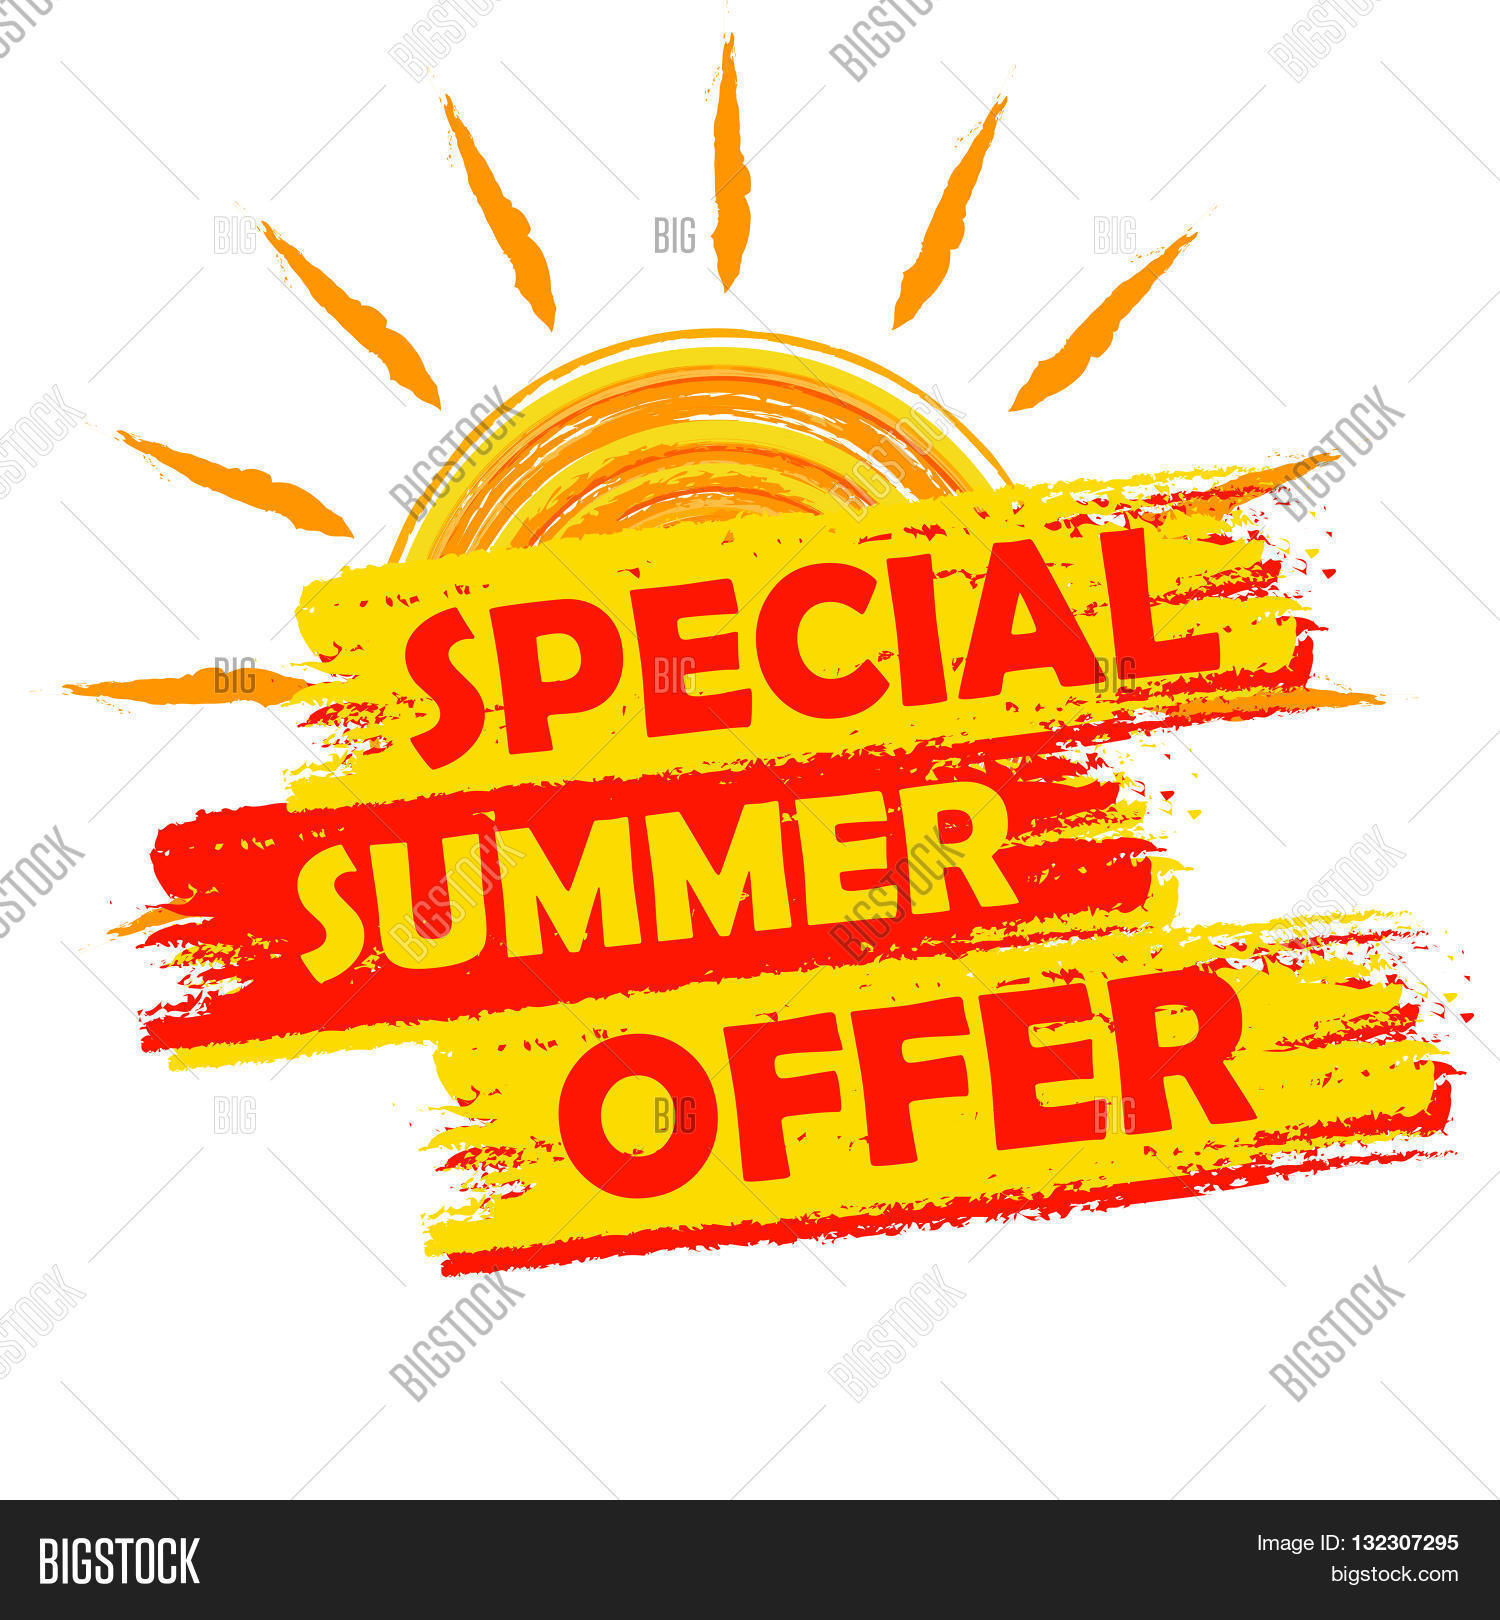 Special Summer Offer Vector Photo Free Trial Bigstock